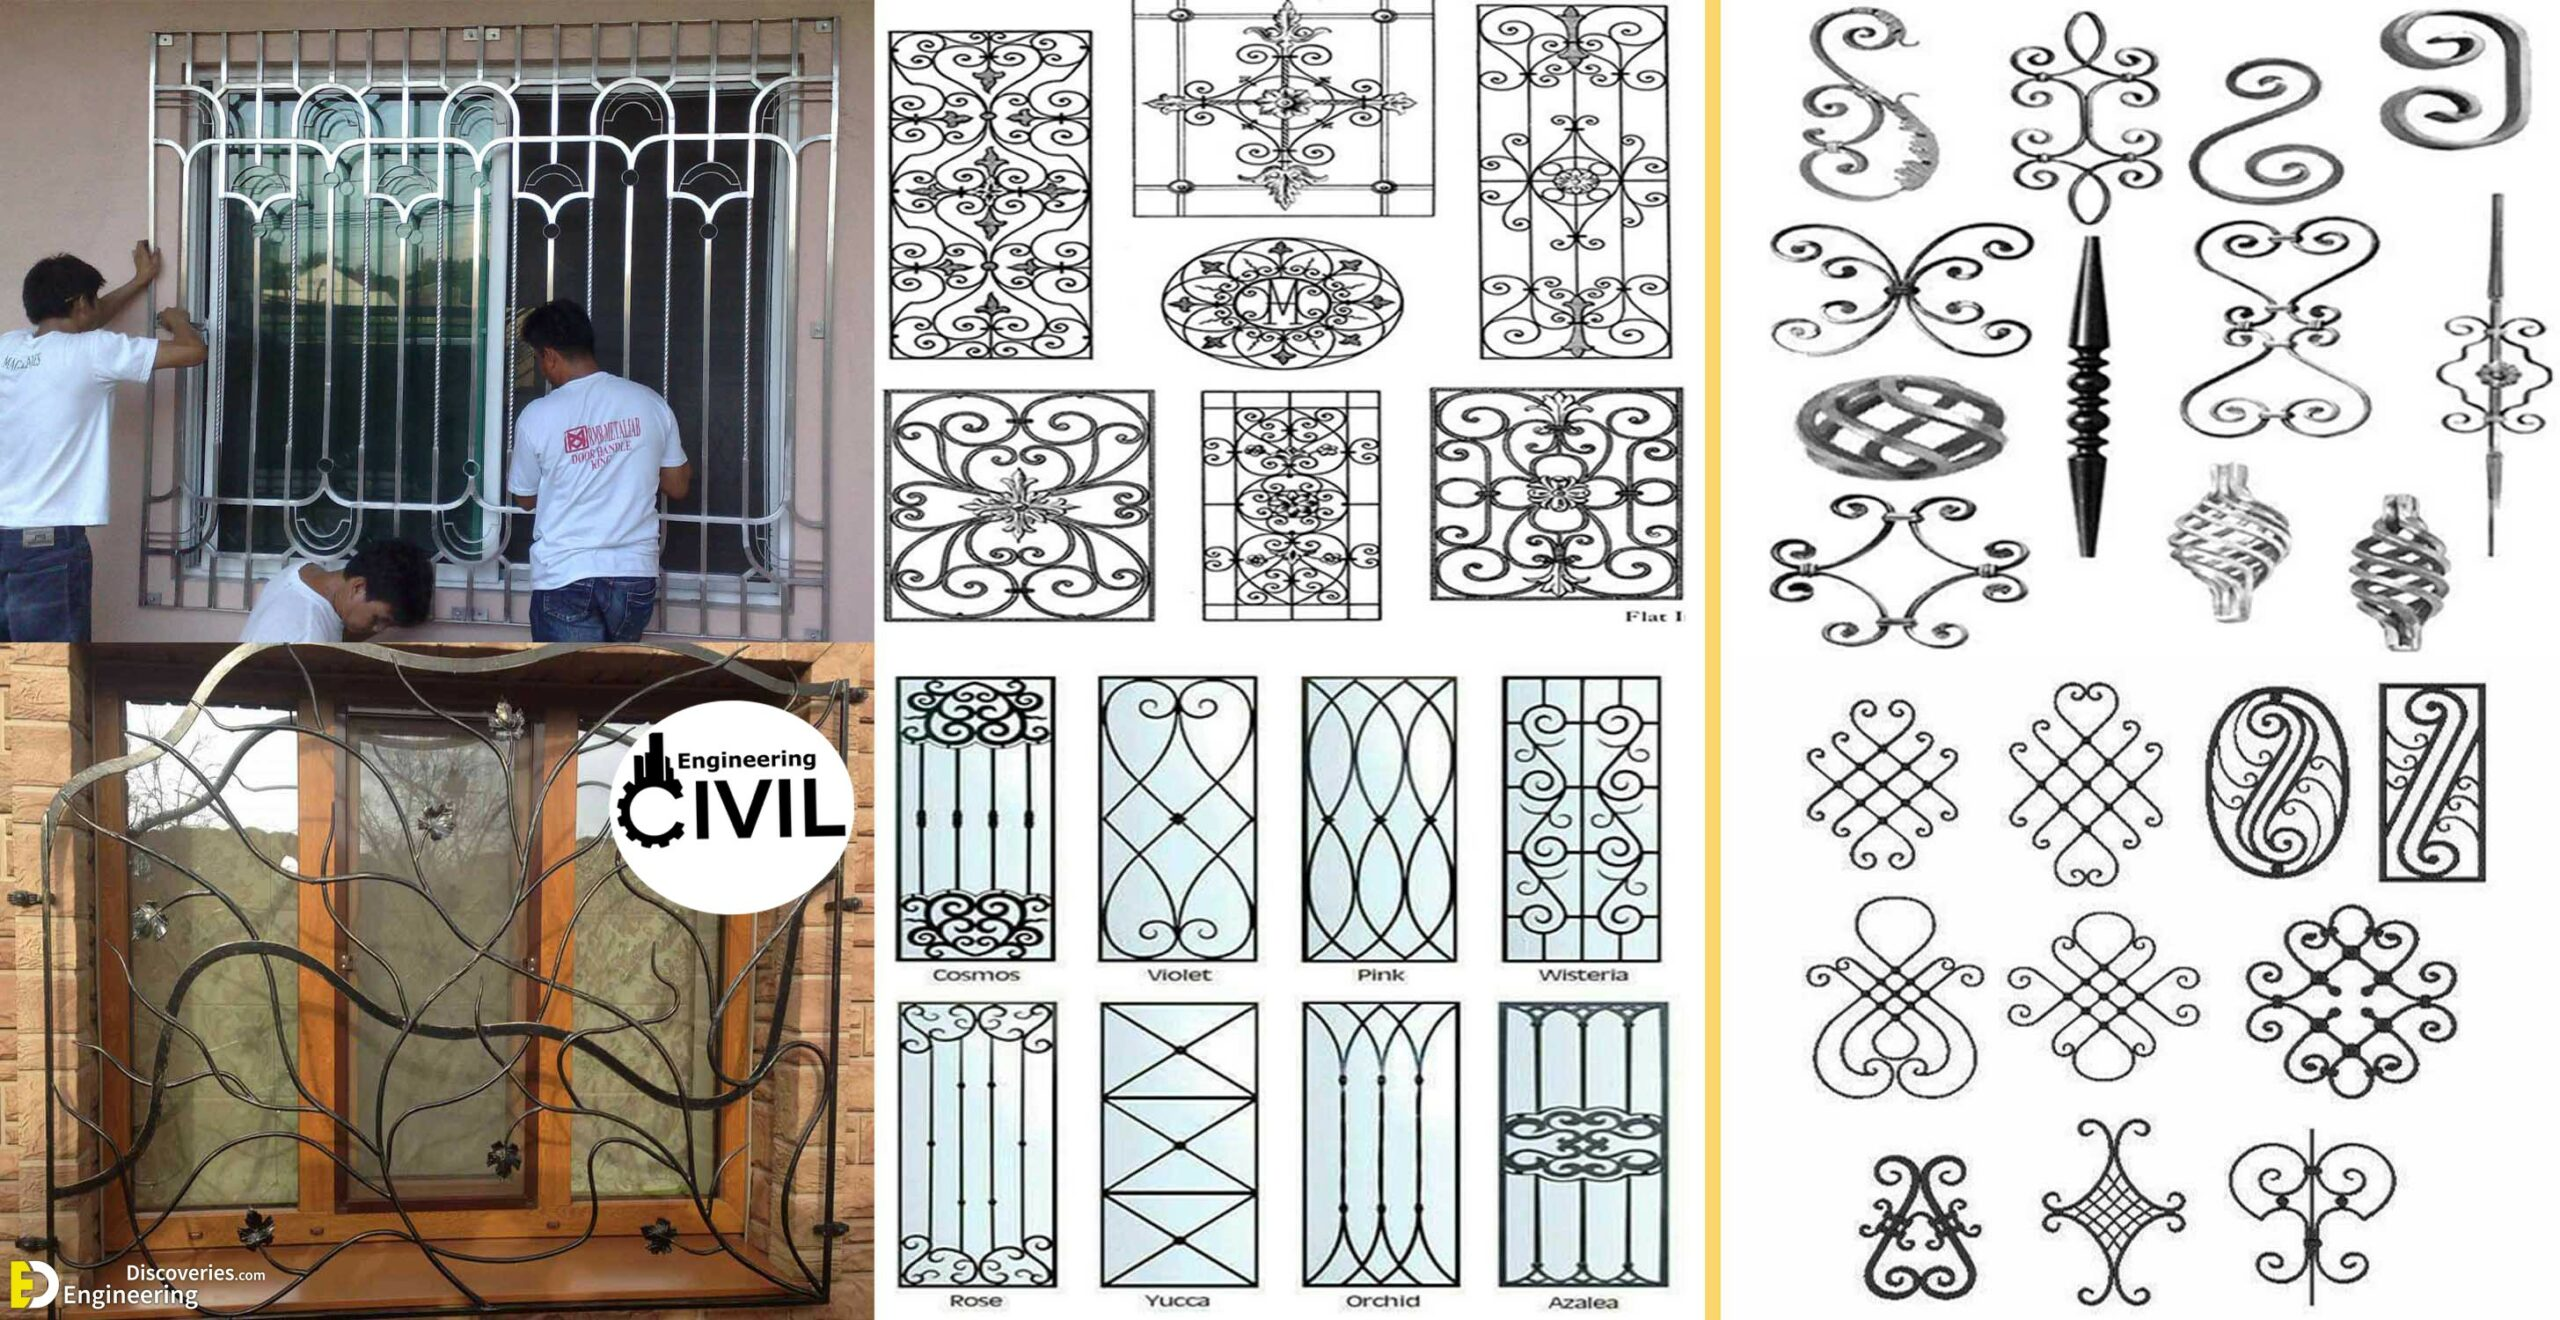 Top 12 Beautiful Grill Design Ideas For Windows   Engineering ...